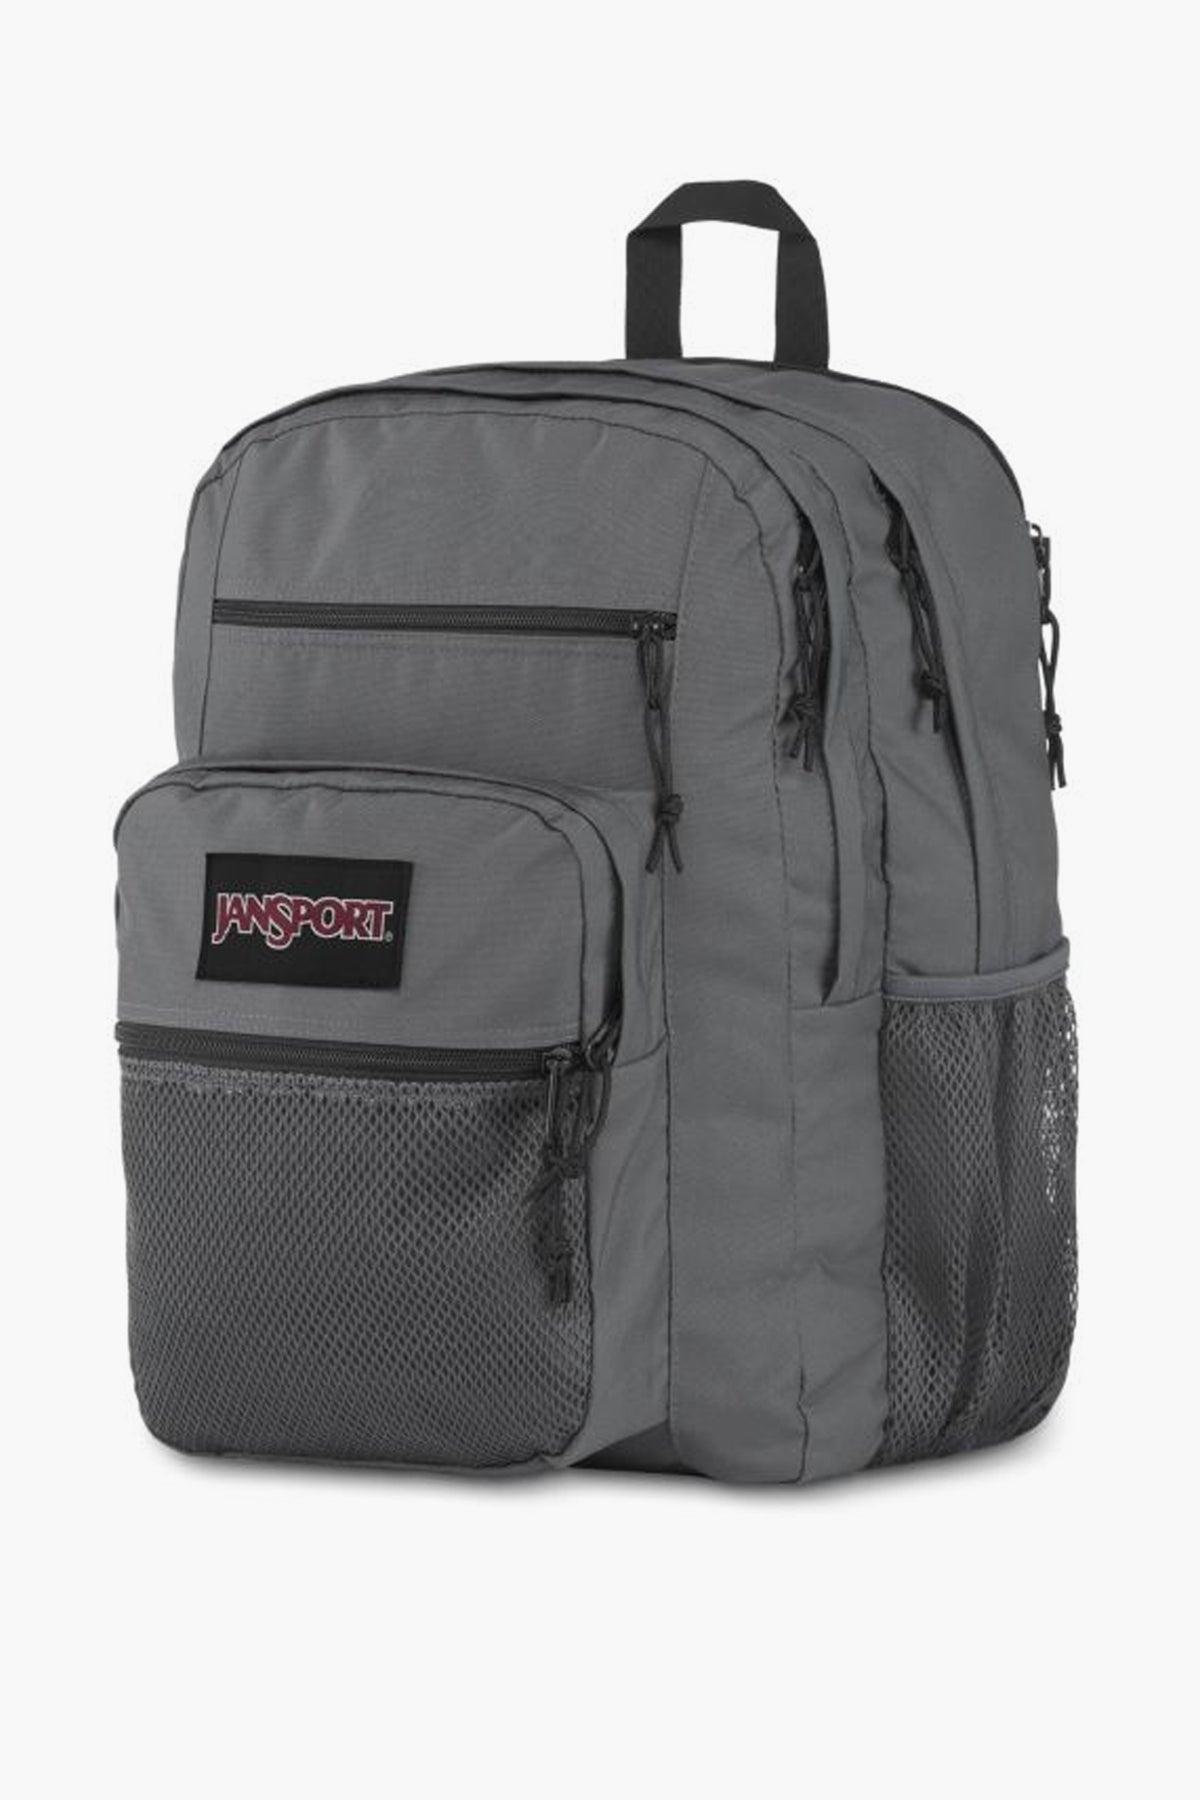 JanSport Big Campus Backpack - Deep Grey